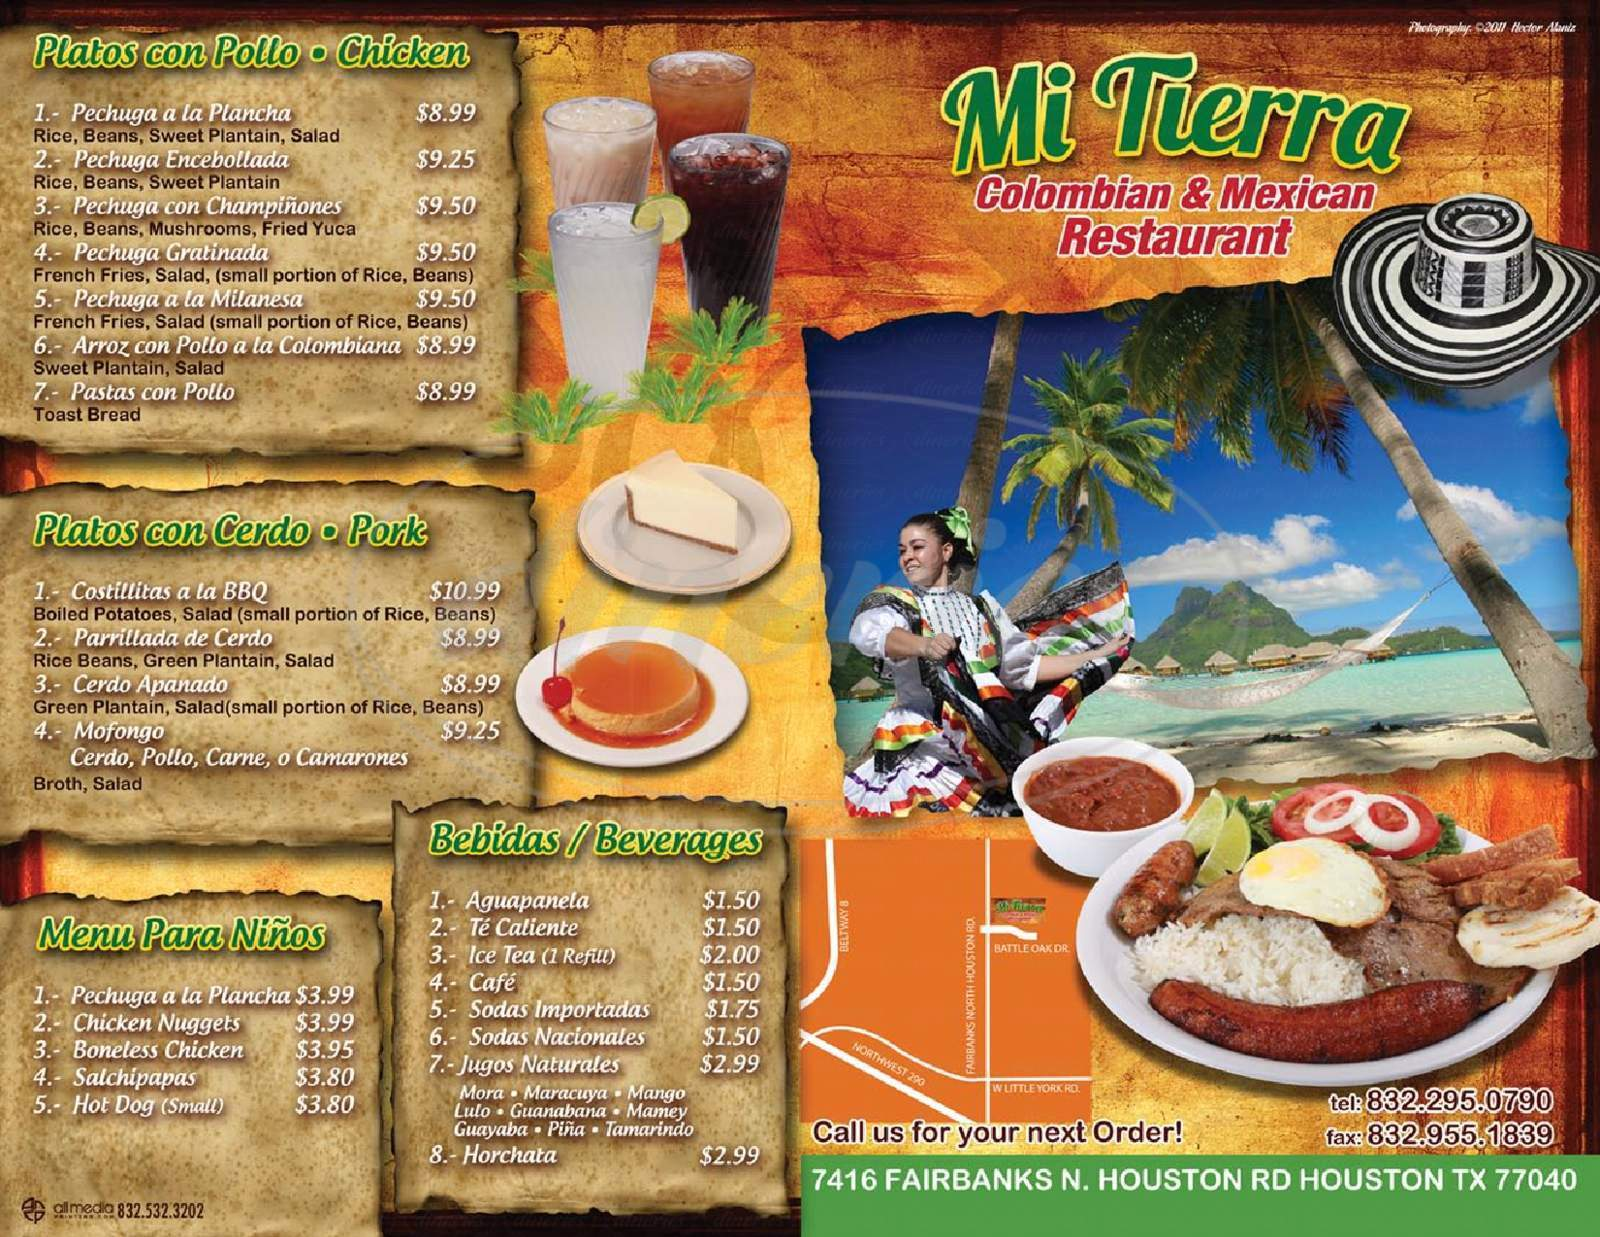 menu for Mi Tierra Colombian & Mexican Restaurant